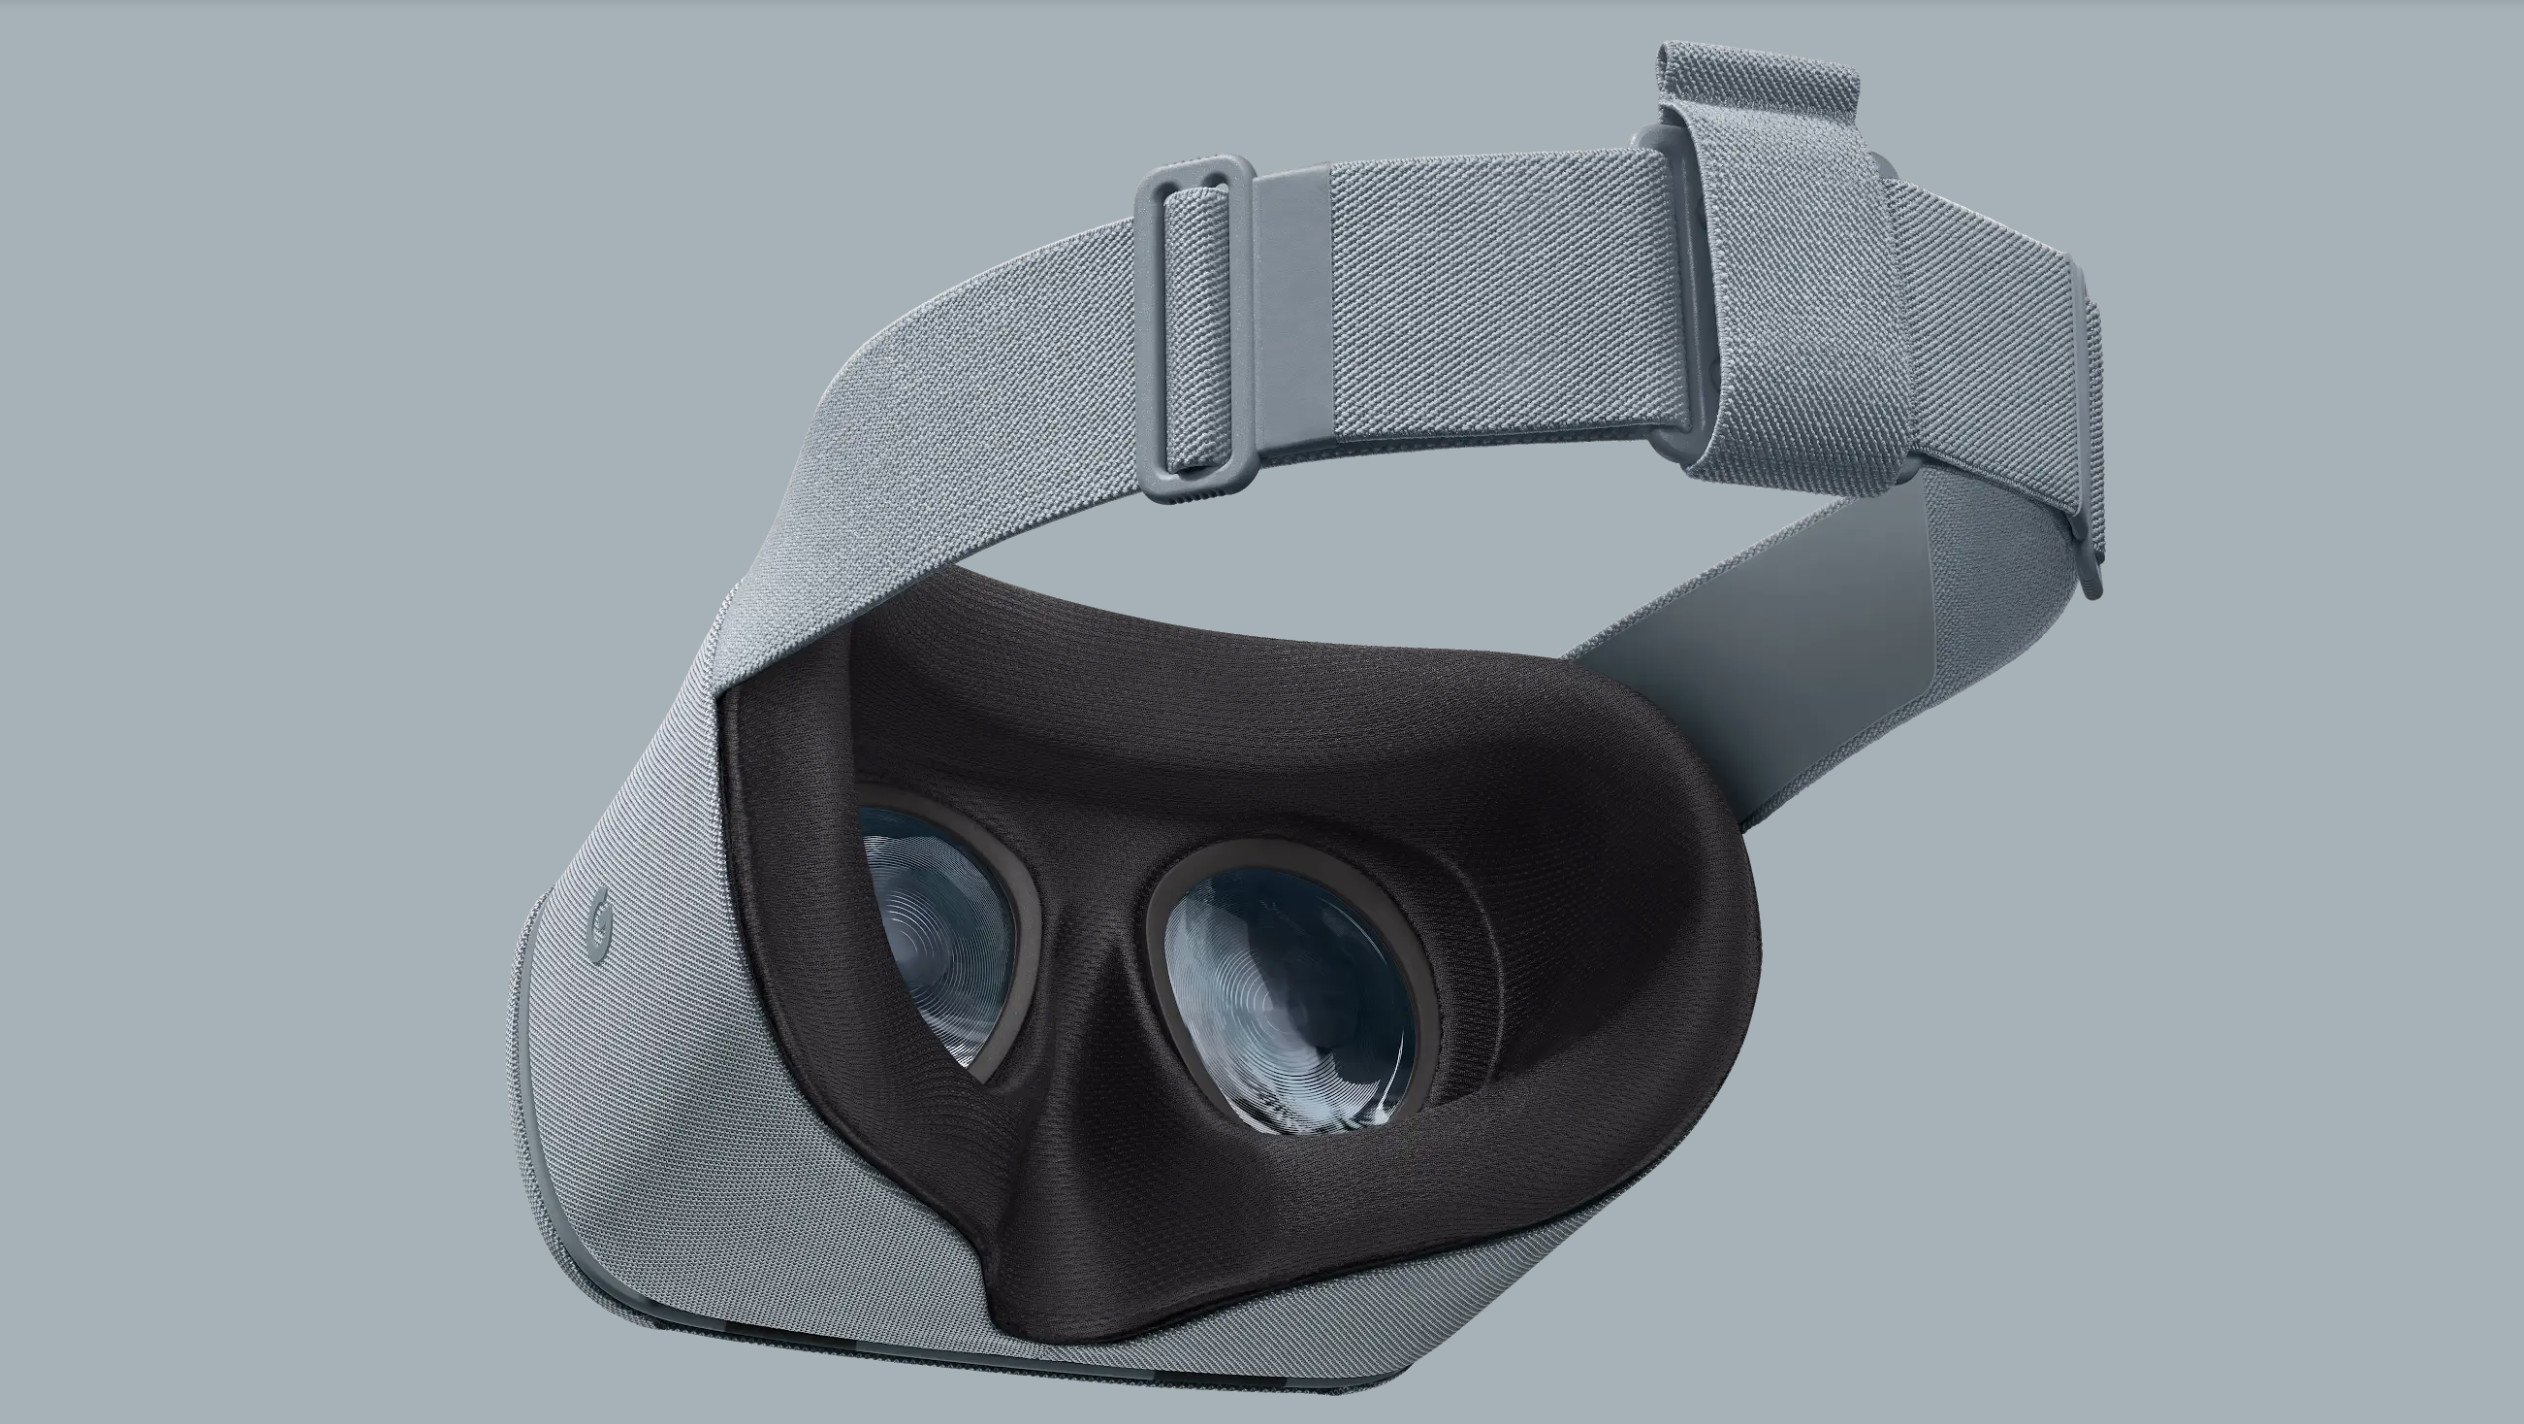 Google brings Chrome browser to their Daydream View VR headset